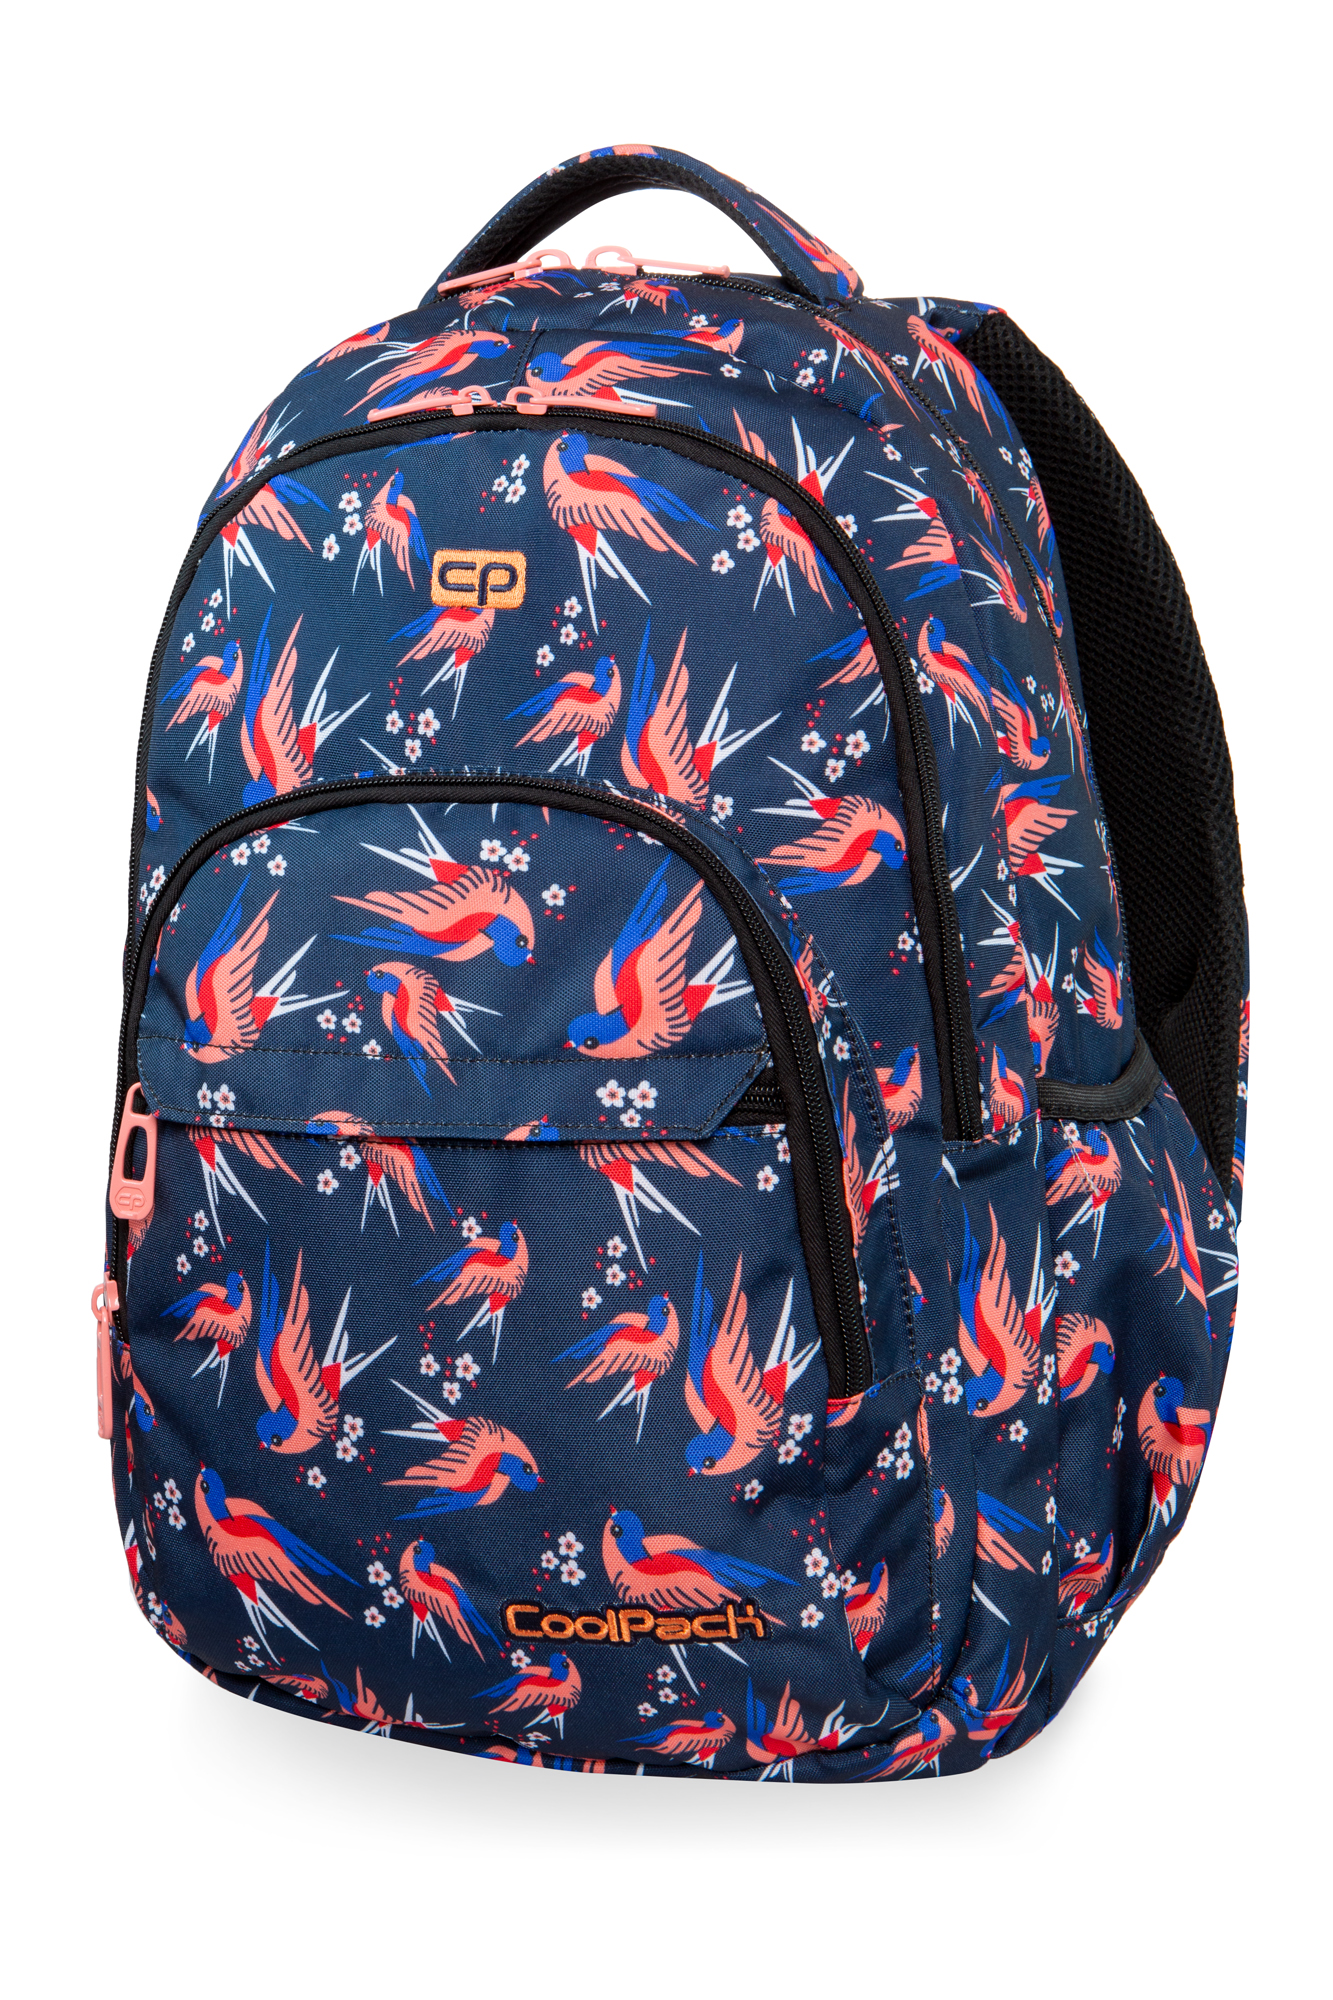 Coolpack - basic plus - youth backpack - colibri